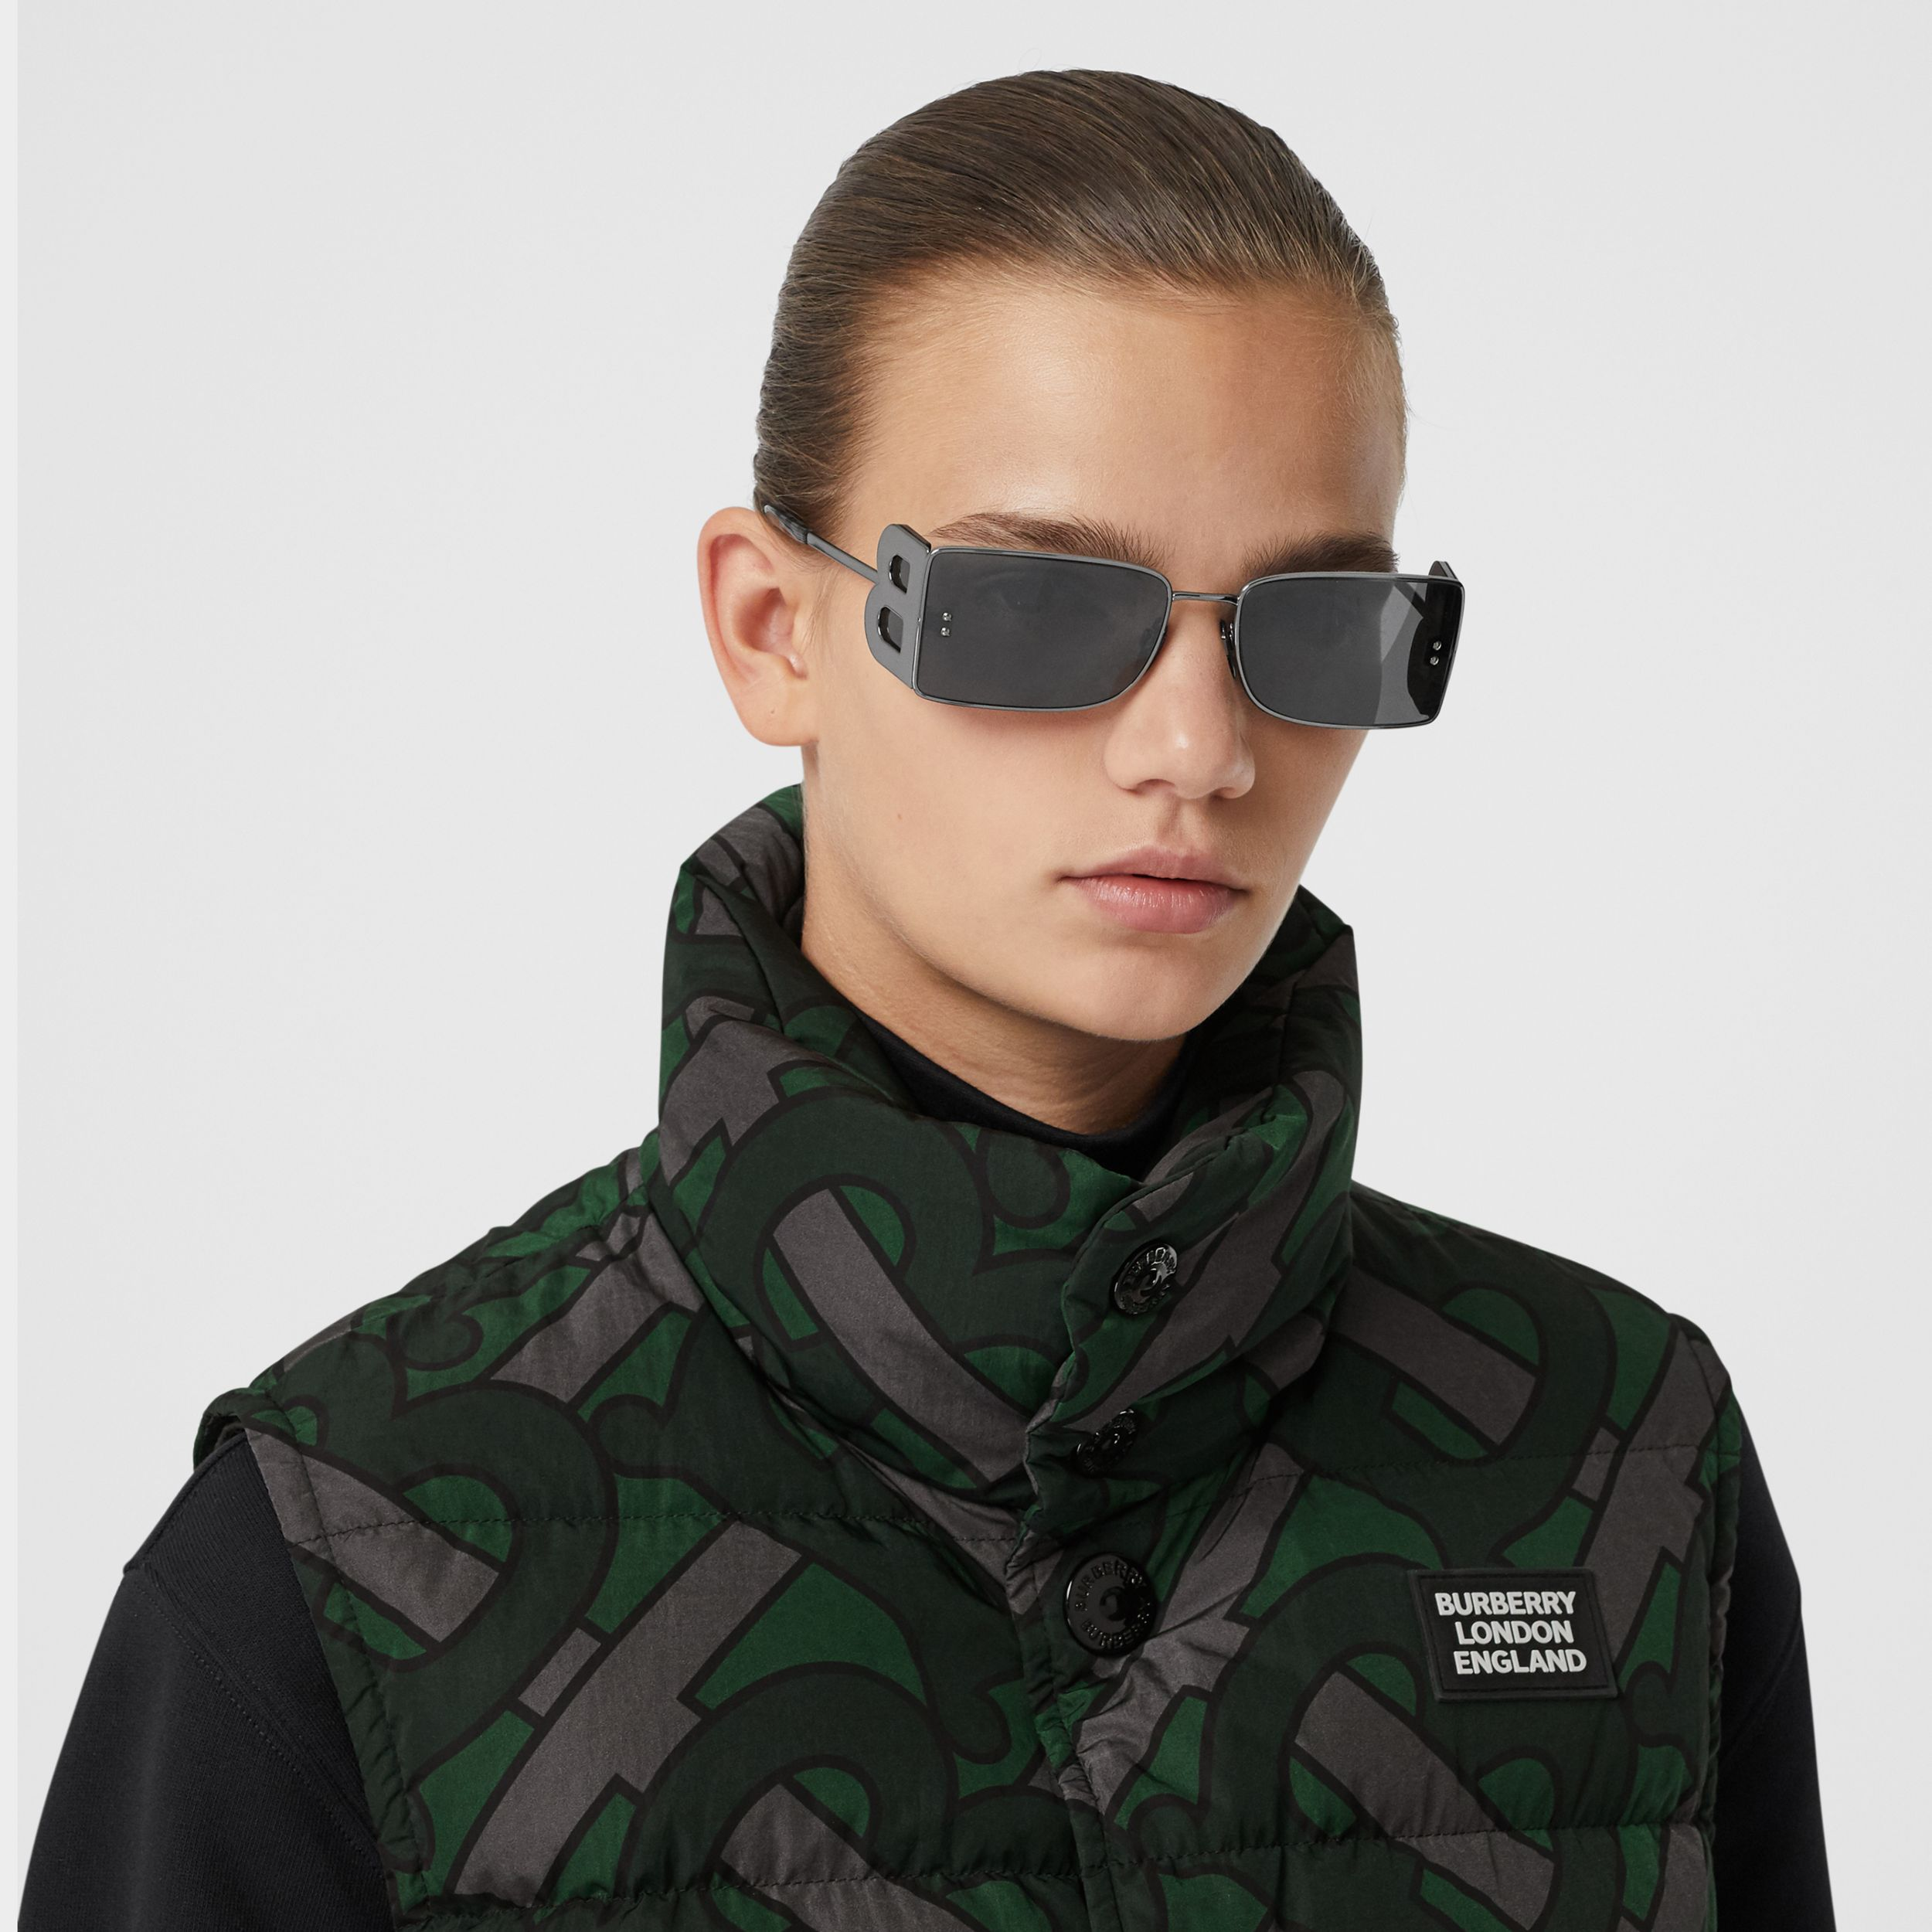 Monogram Print Puffer Gilet in Forest Green | Burberry United States - 2